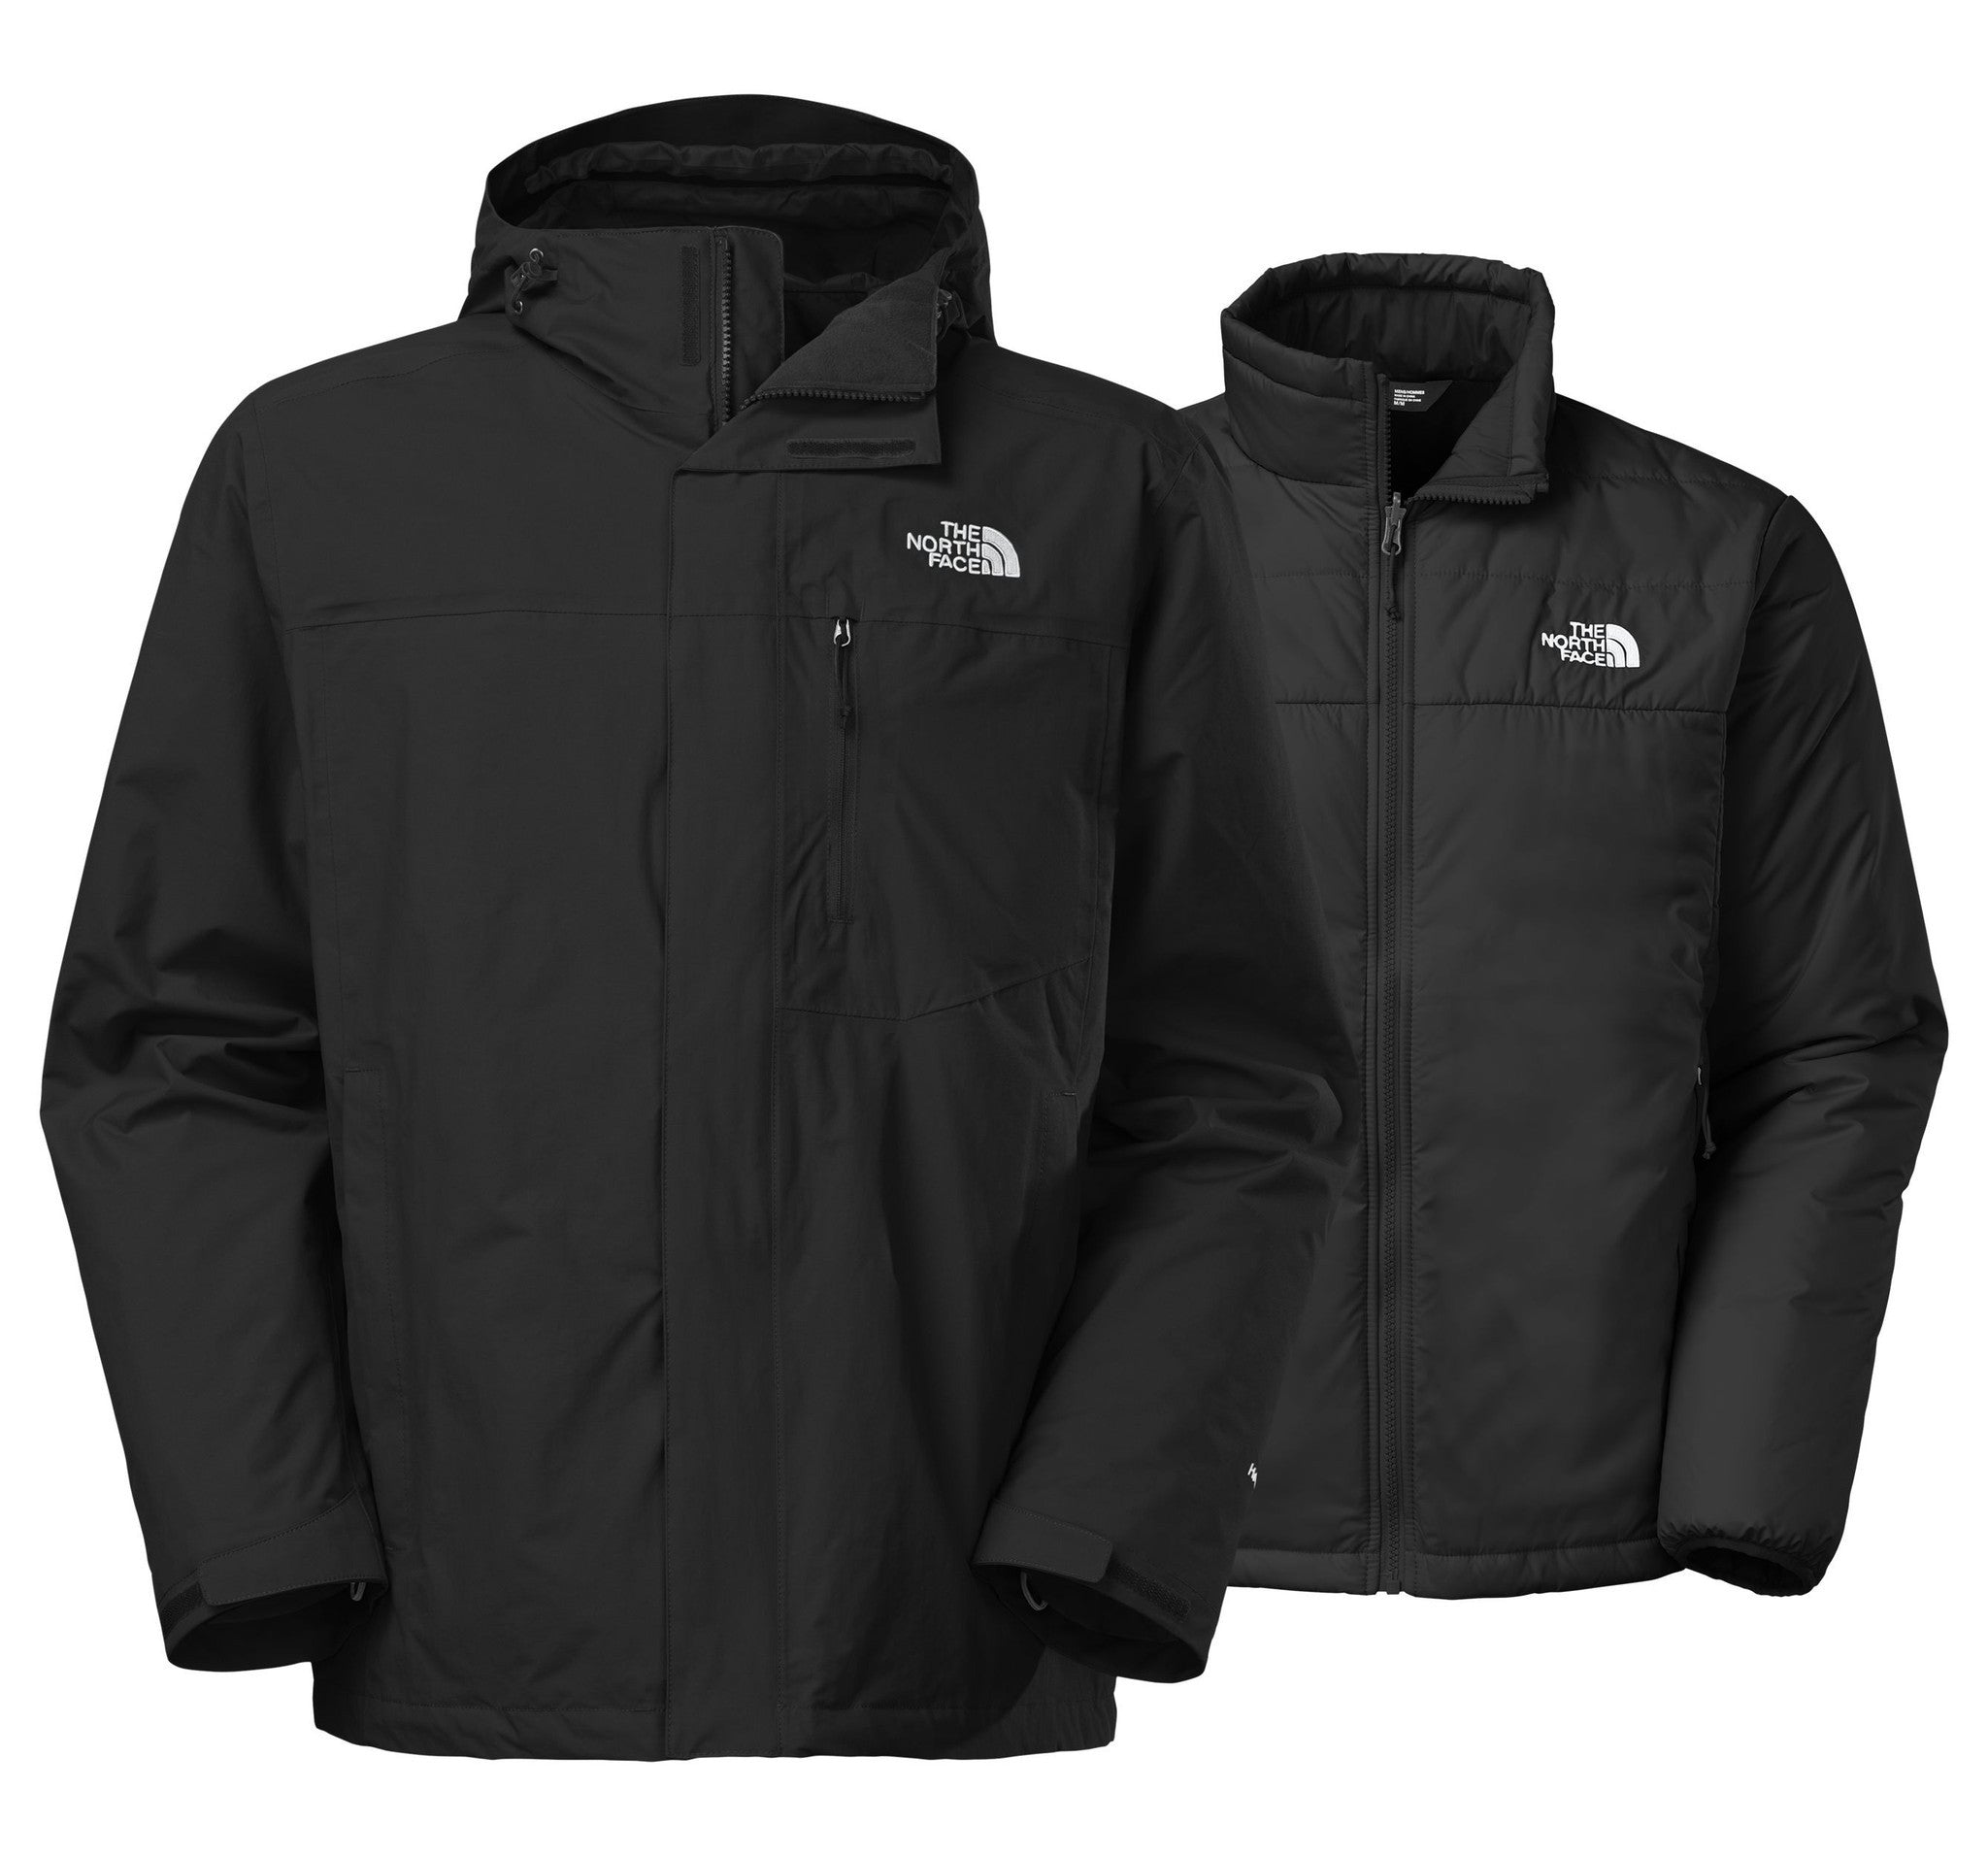 The North Face Men's Carto Triclimate Jacket (Discontinued)